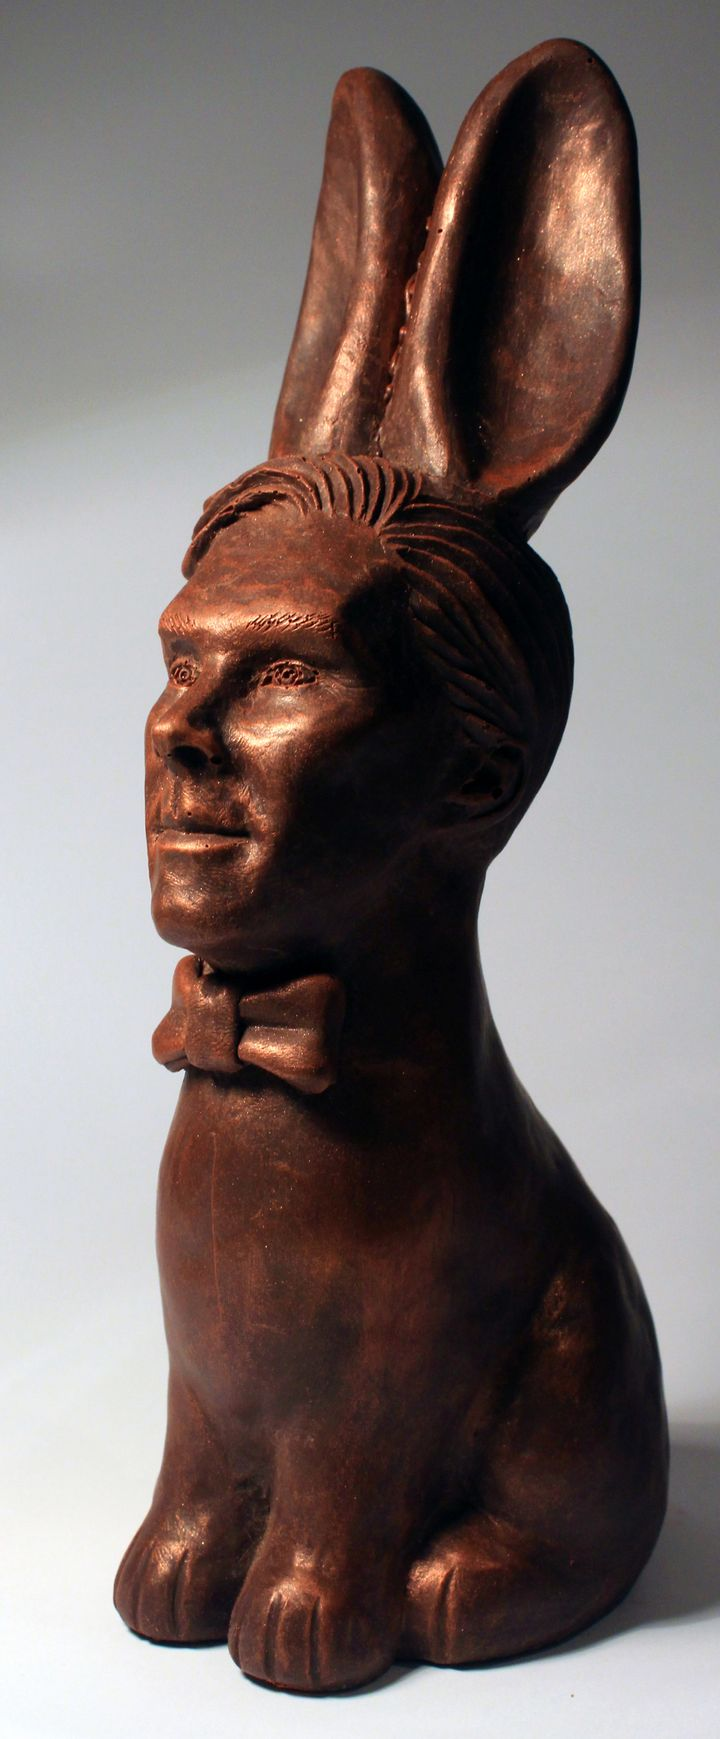 The chocolate Cumberbunny is described as a delicious Belgian chocolate rabbit with a handsome face and a tasty bottom.